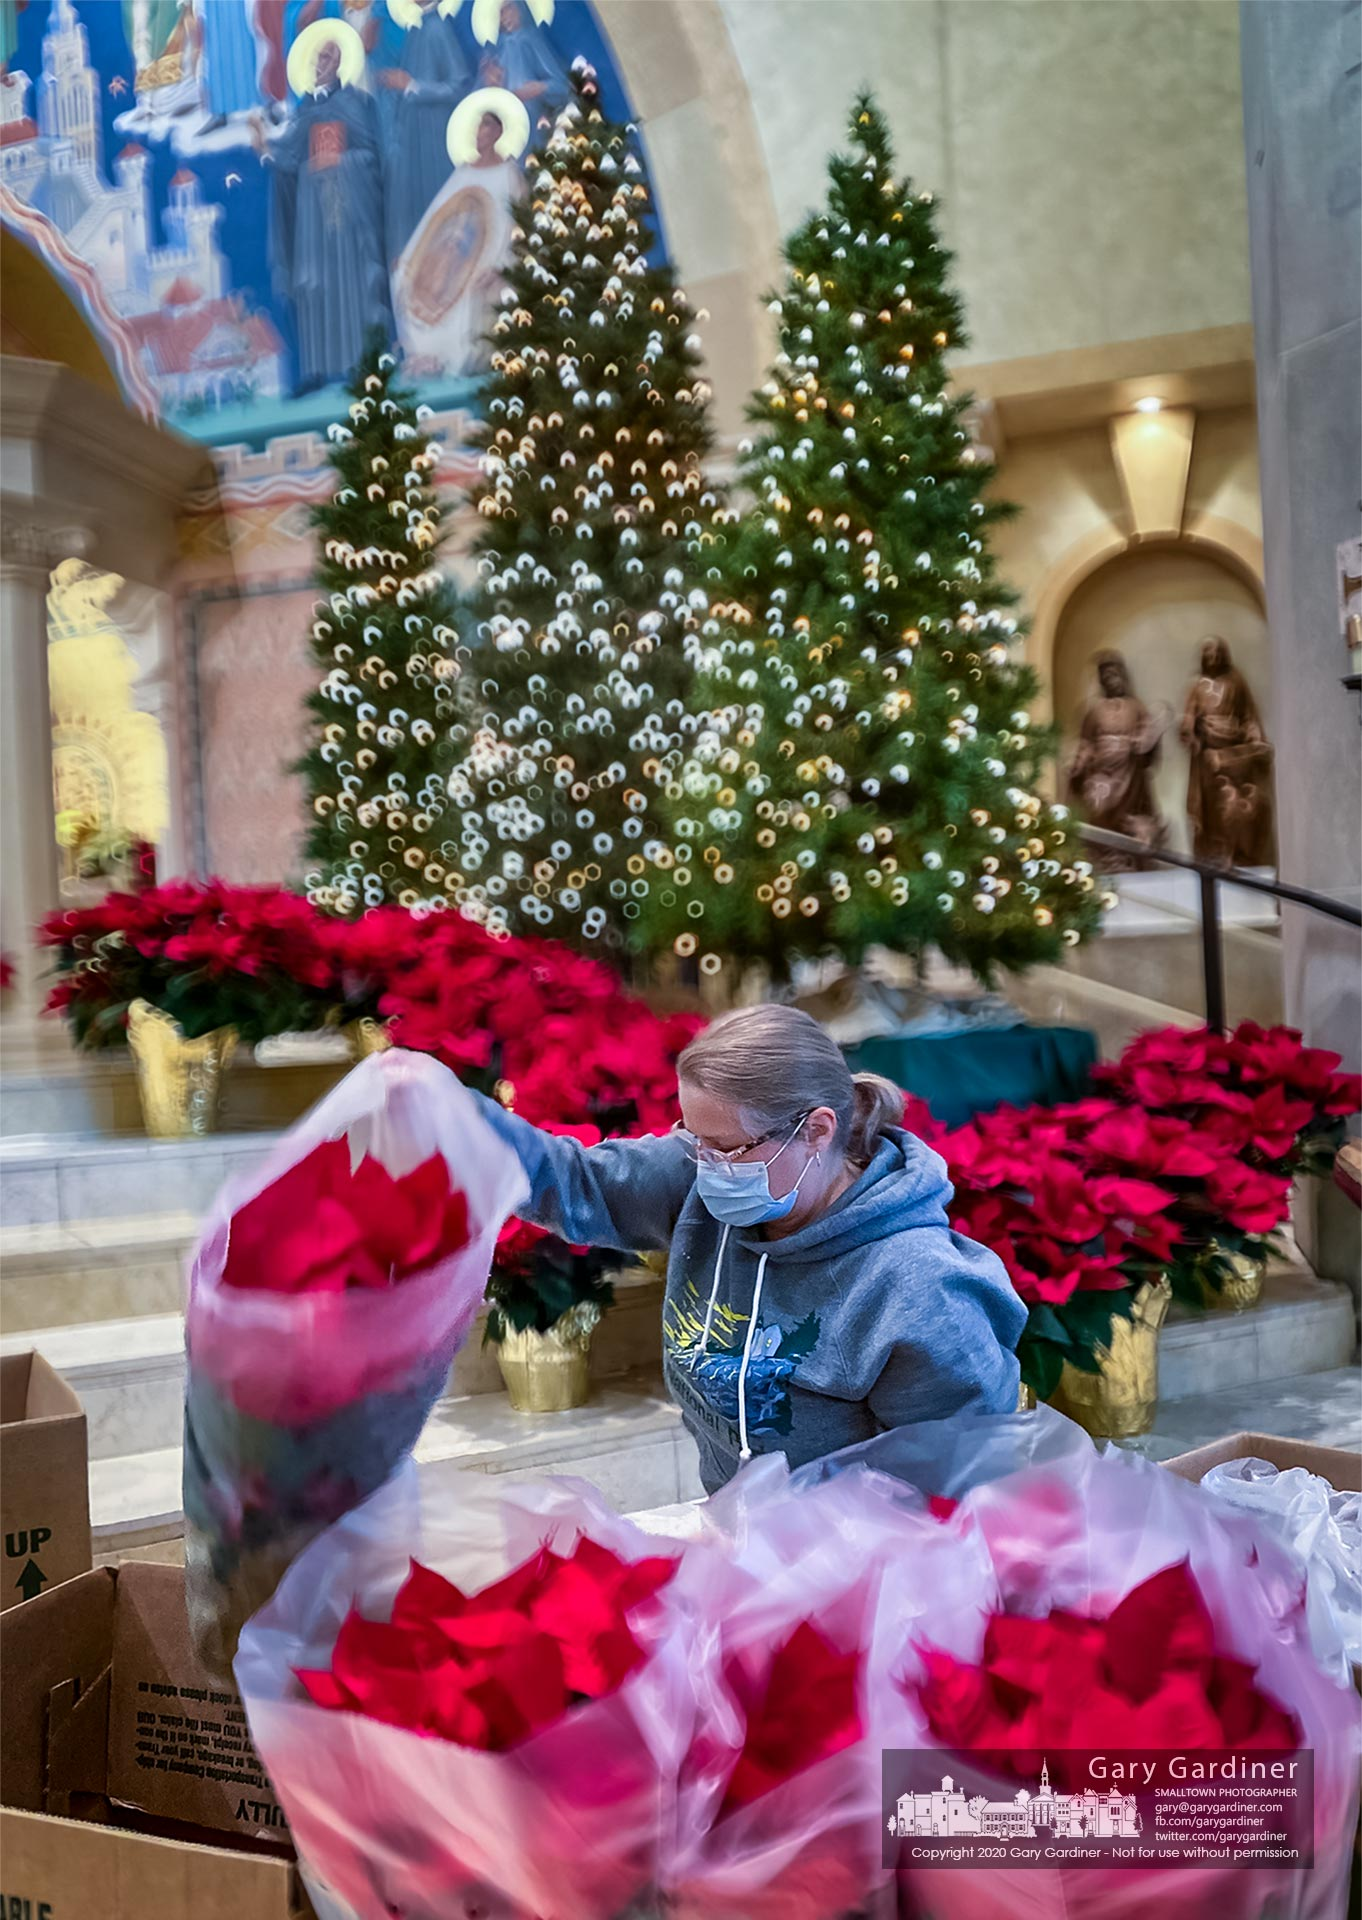 Volunteers place poinsettias in St. Paul the Apostle Catholic Church getting it ready for Christmas Day Masses. My Final Photo for Dec. 23, 2020.